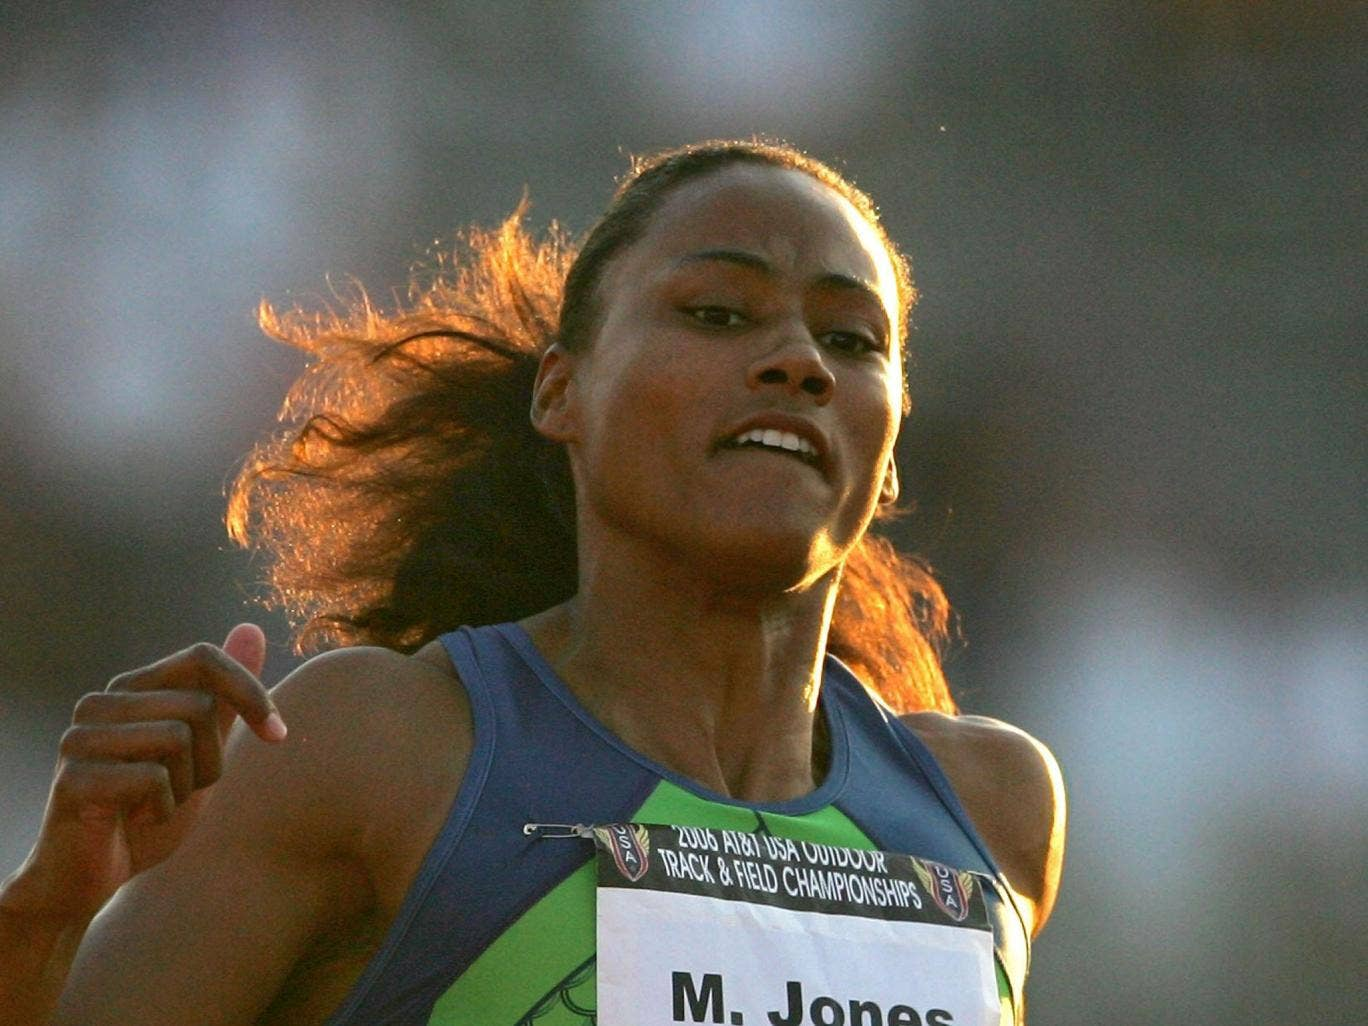 The 2003 Balco scandal ultimately brought down the US sprinter Marion Jones